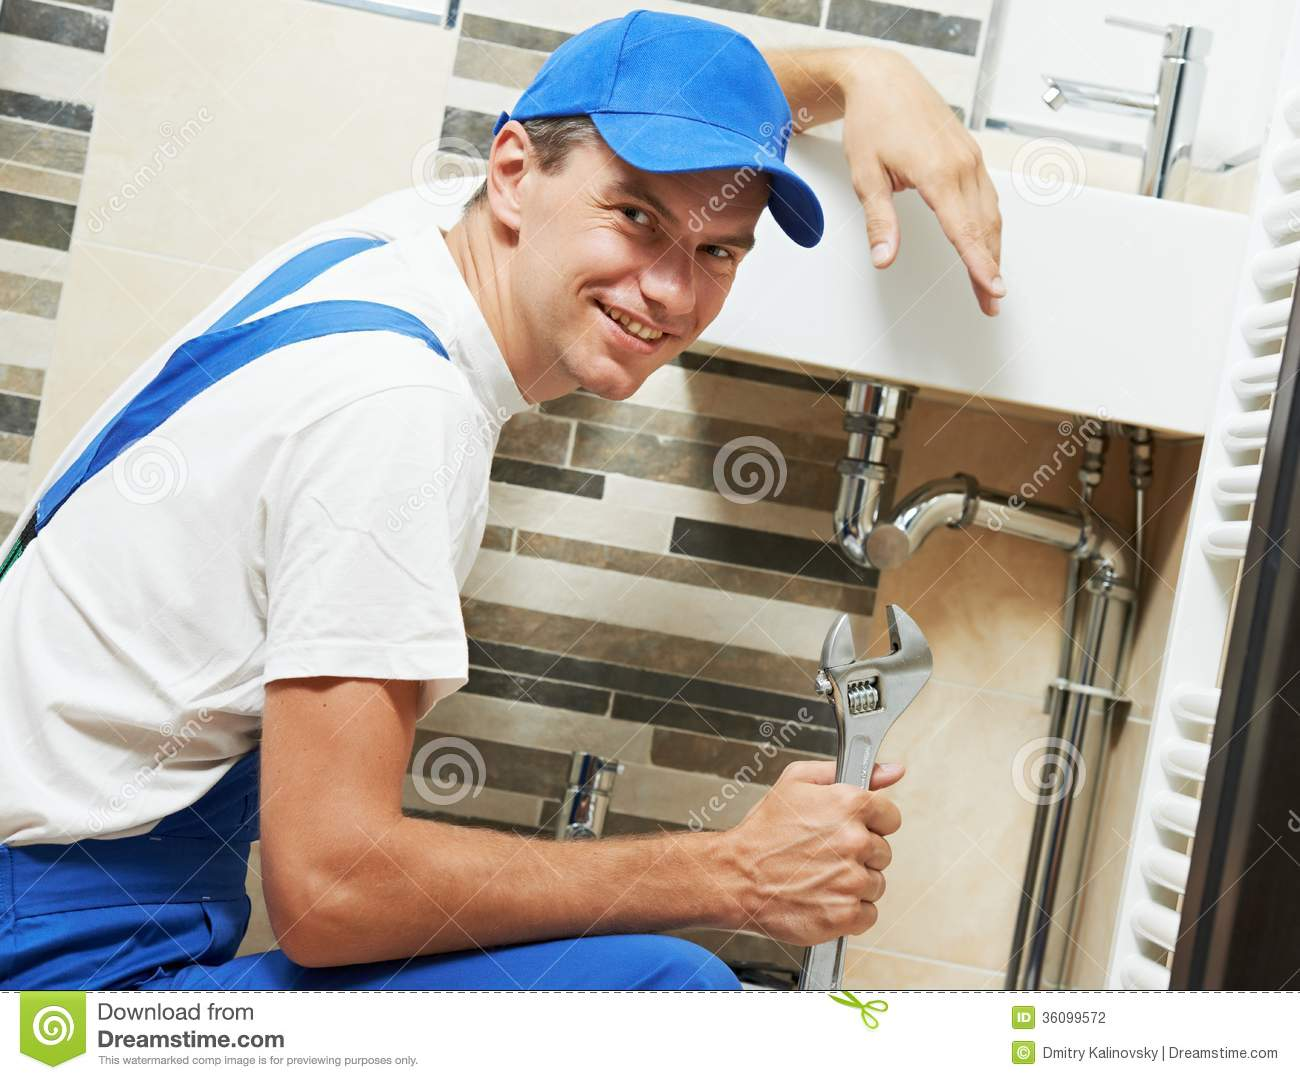 young-smiling-plumber-man-worker-happy-spanner-sanitary-washbasin-installation-system-36099572.jpg